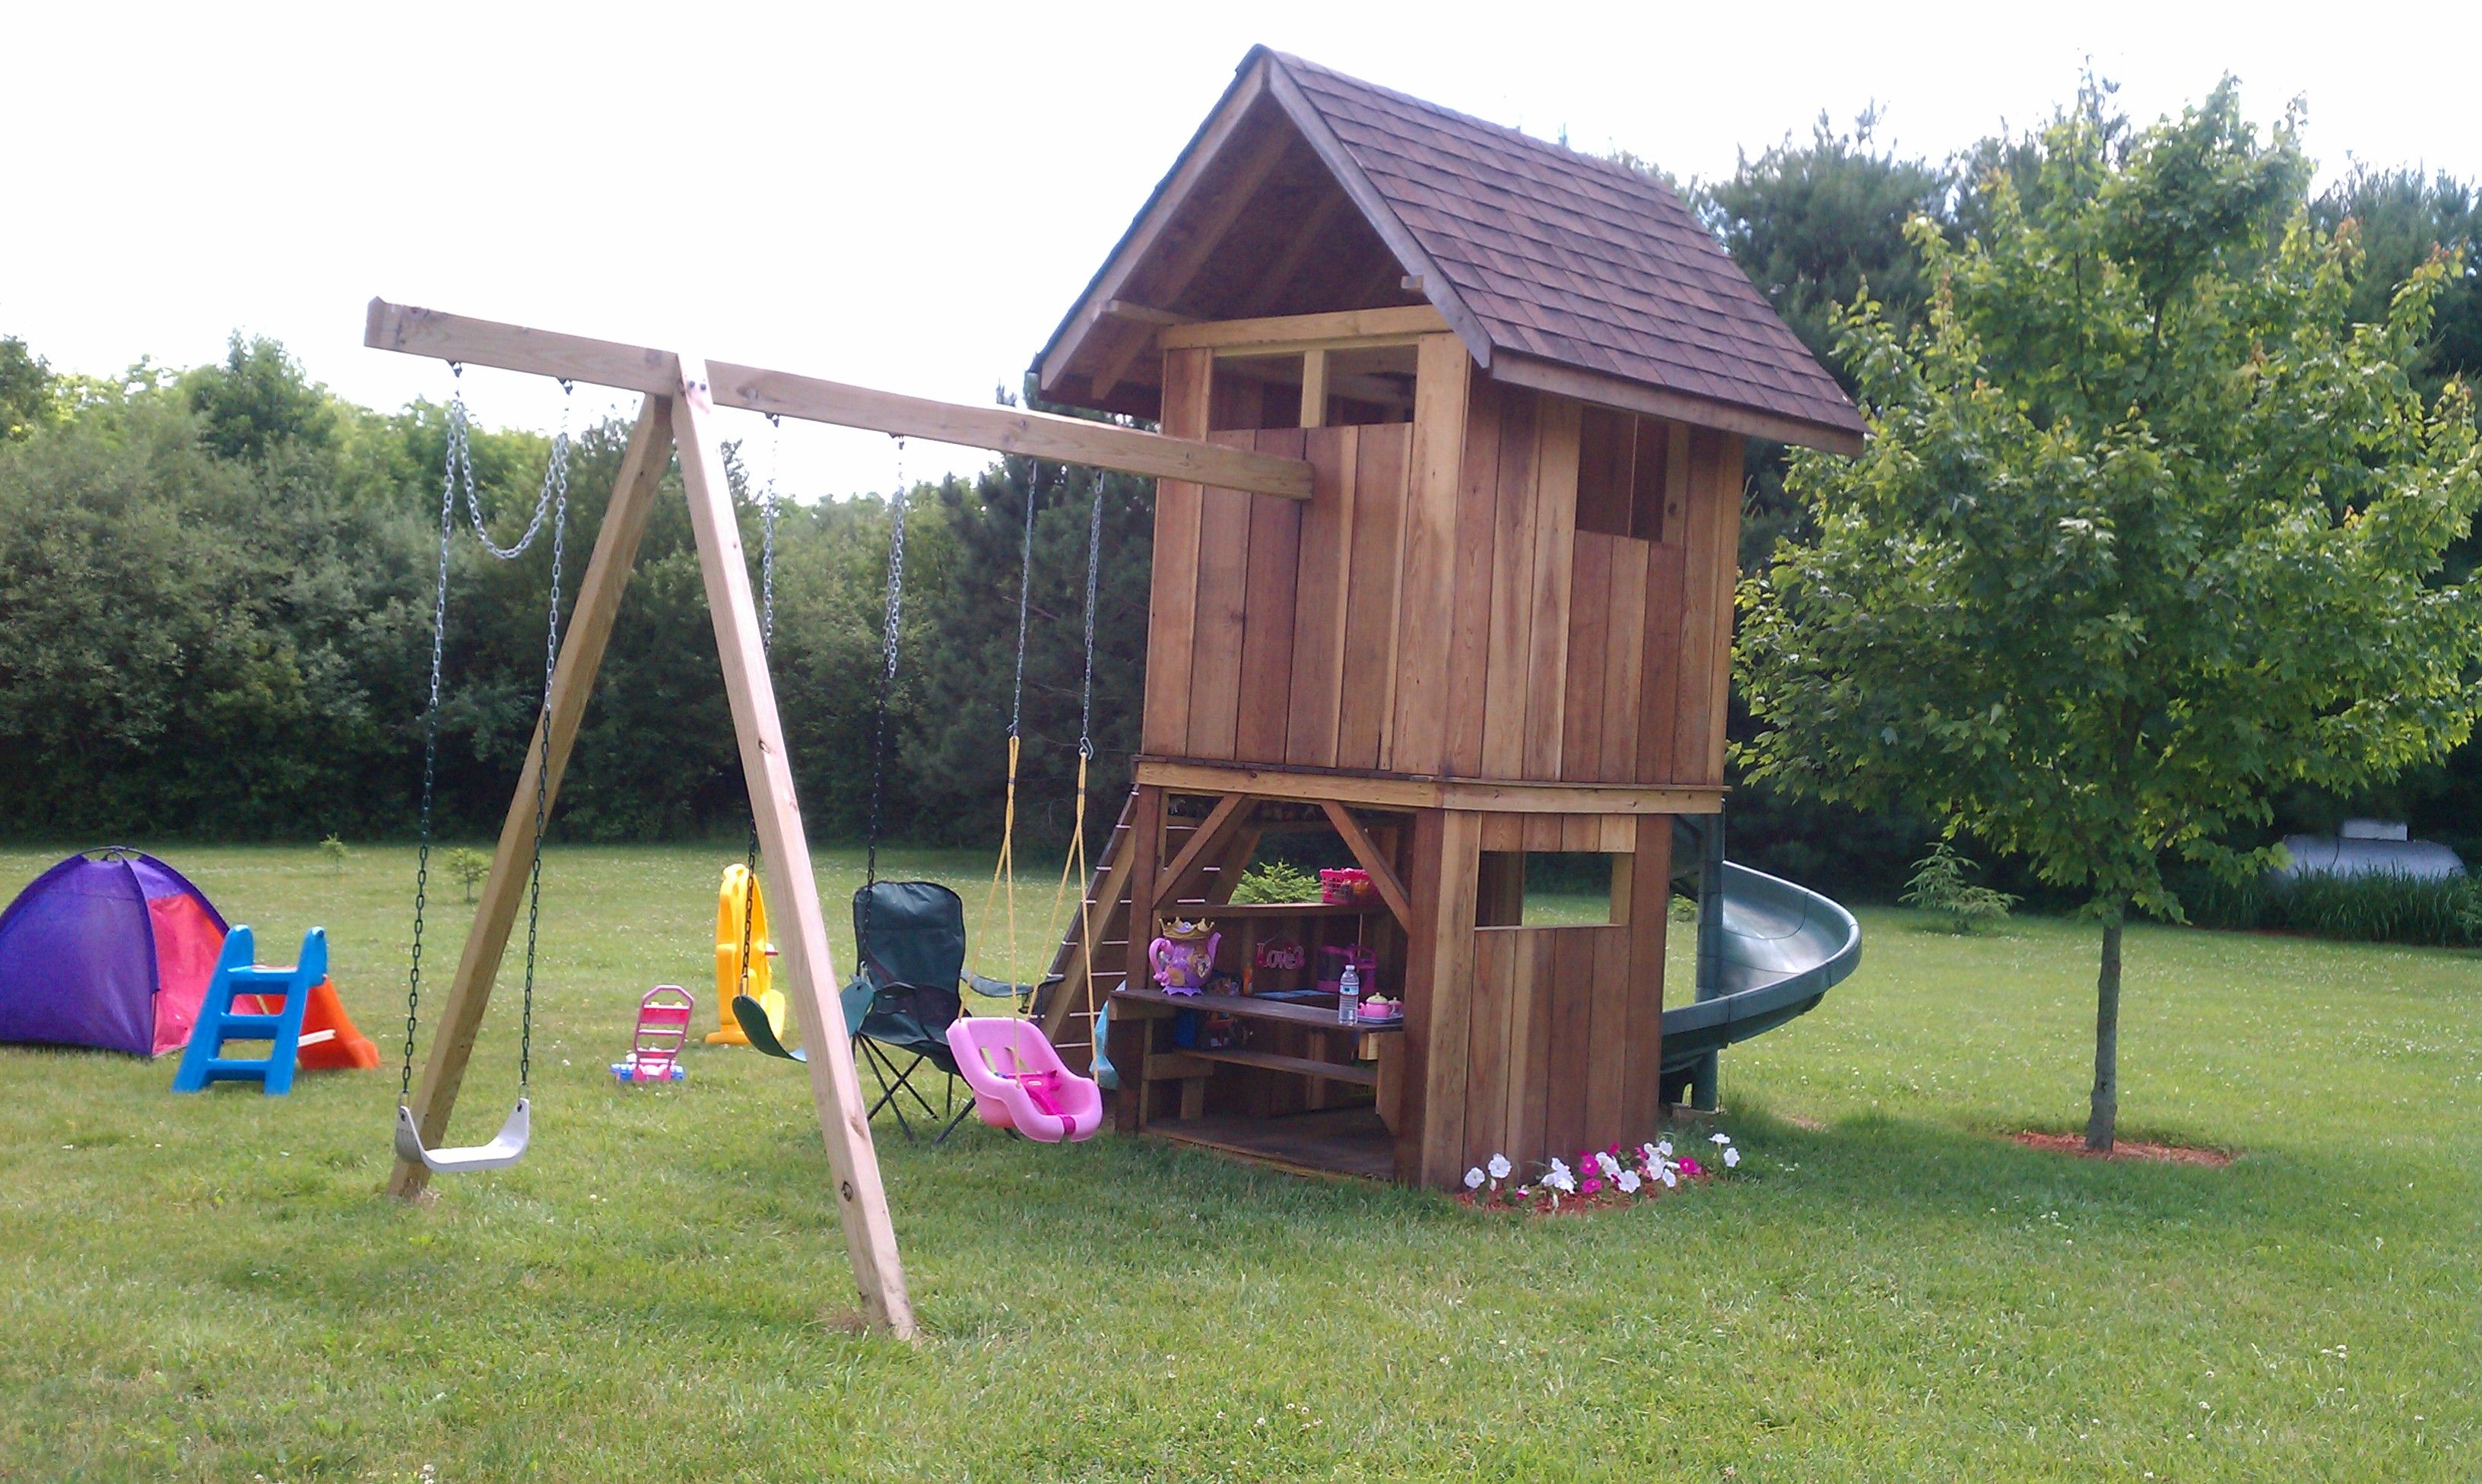 Exceptionnel Kids Playhouse With Kitchen On First Floor, Three Swings, Climbing Board To  Second Floor With Spiral Slide Access.